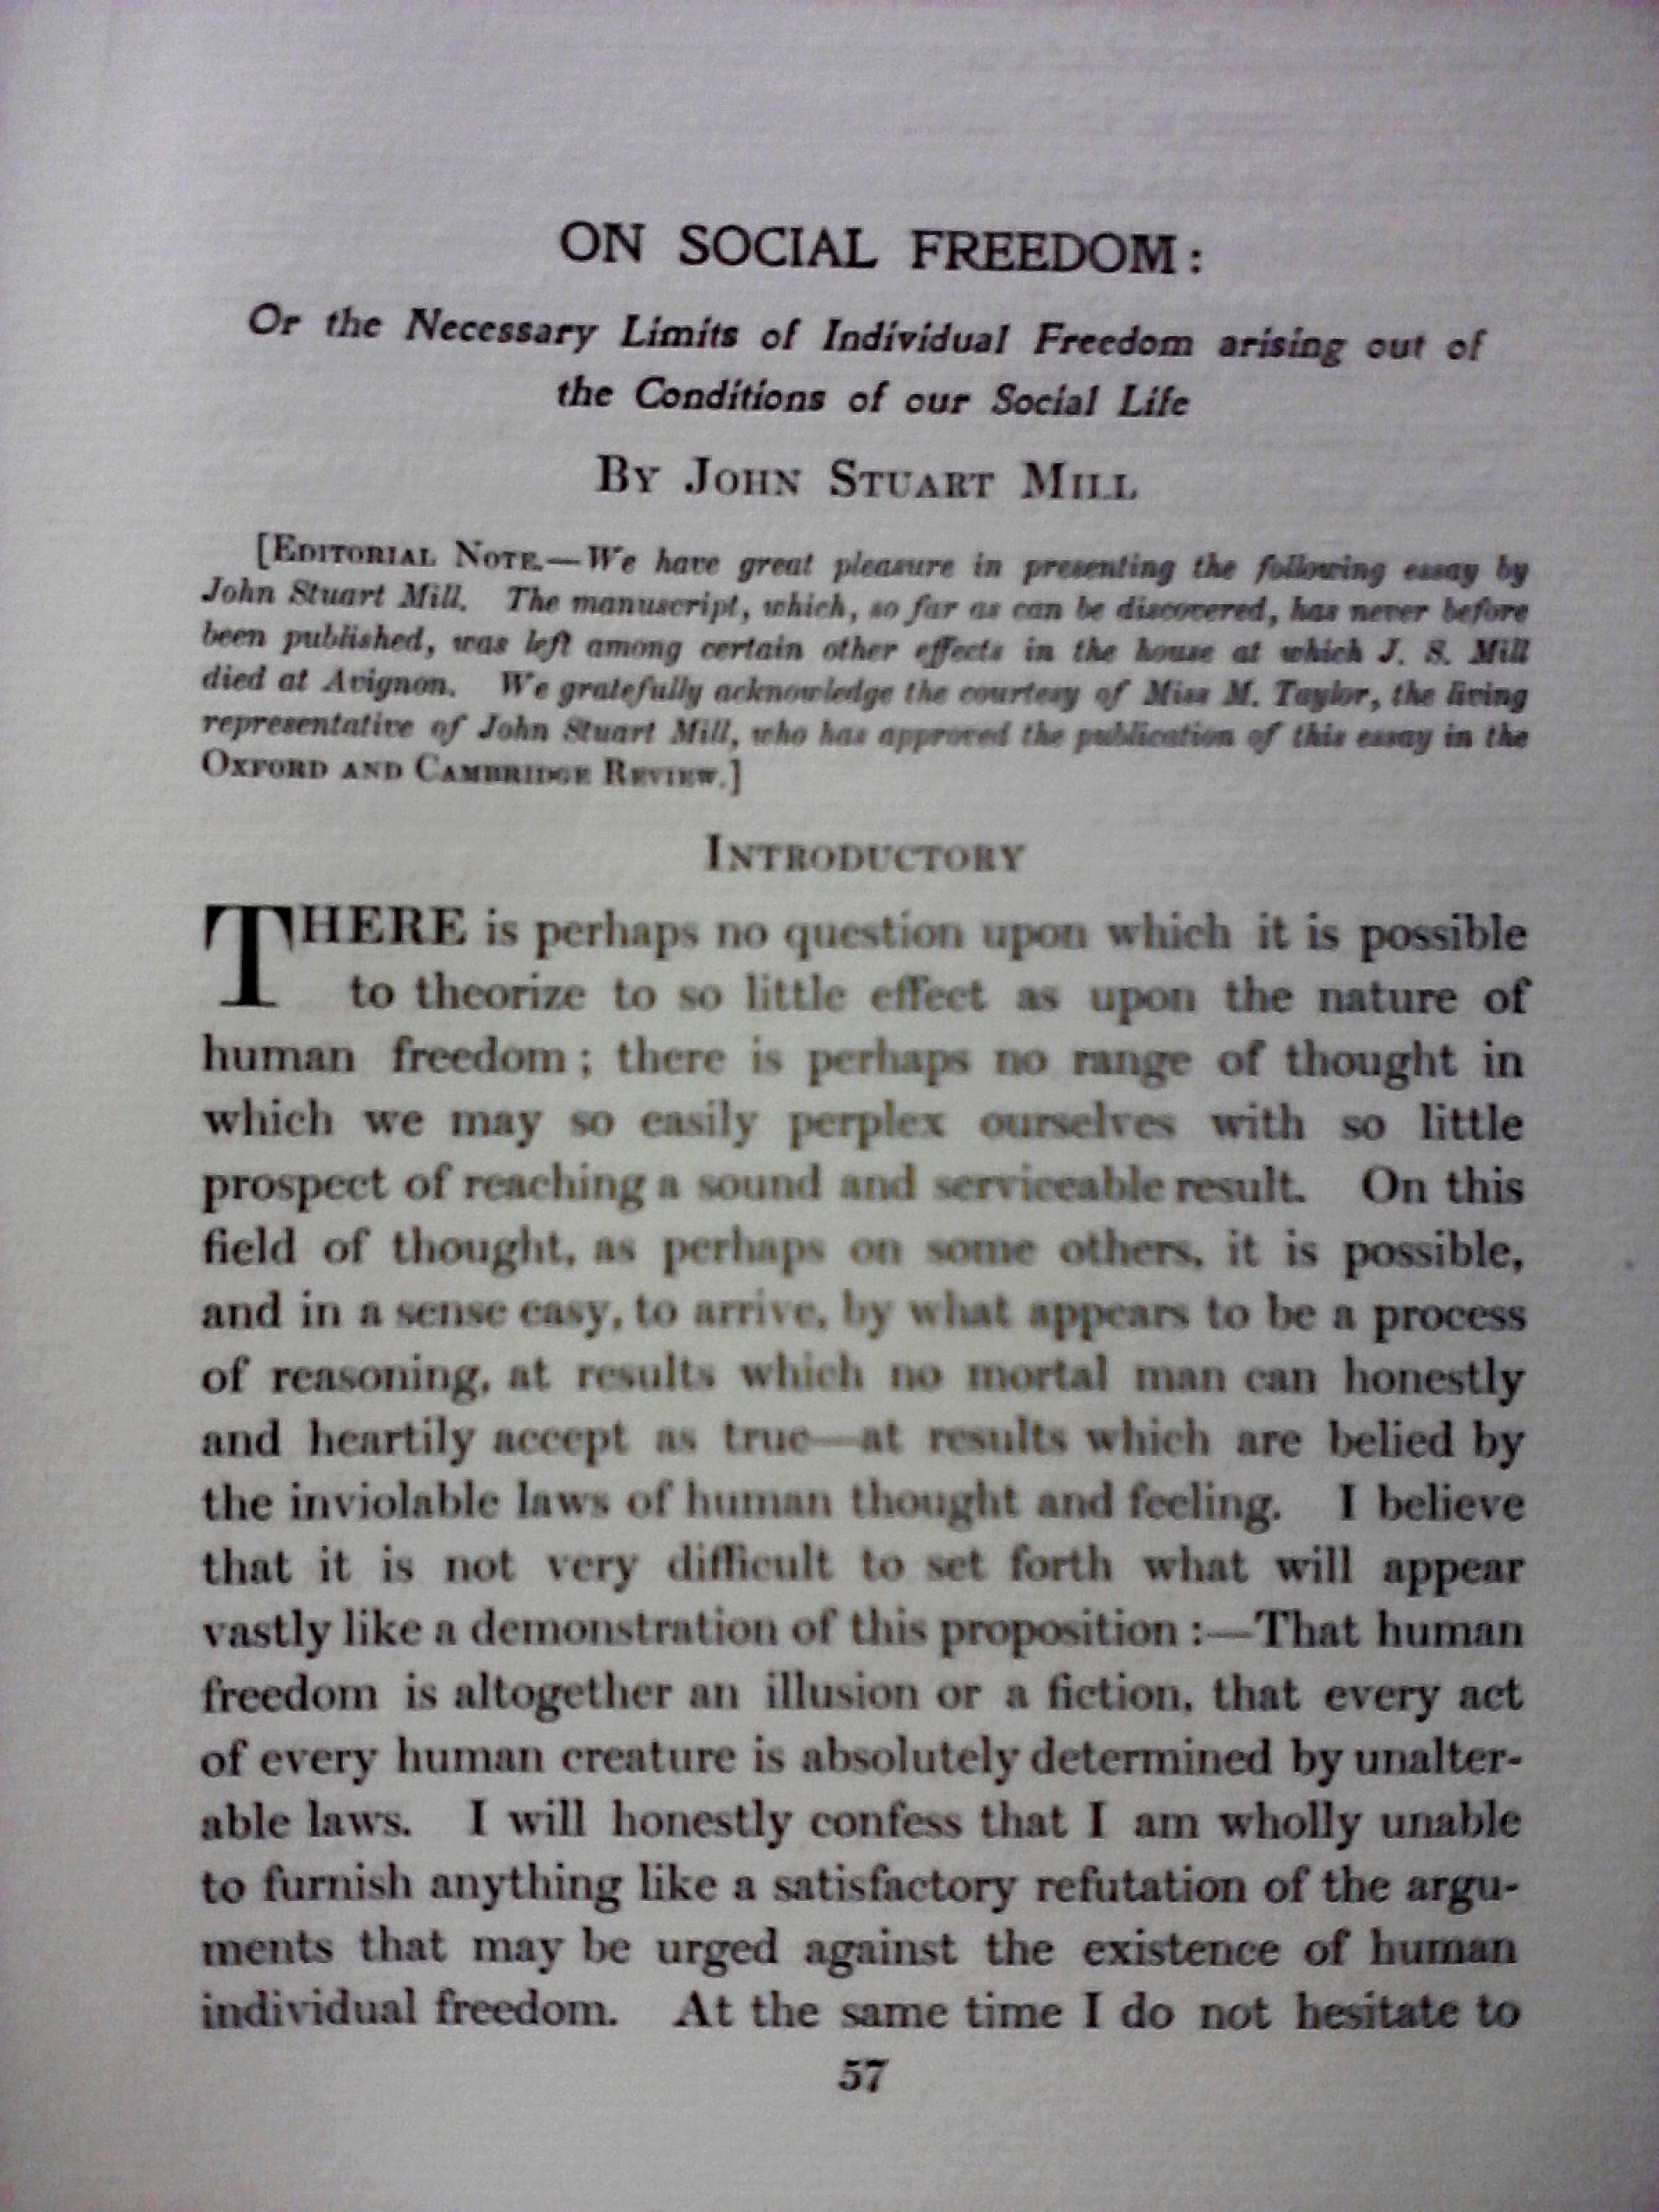 006 Essay Example Freedom Definition On Social In Oxford And Cambridge Review 1907 Rare Meaning Of Speech 1920